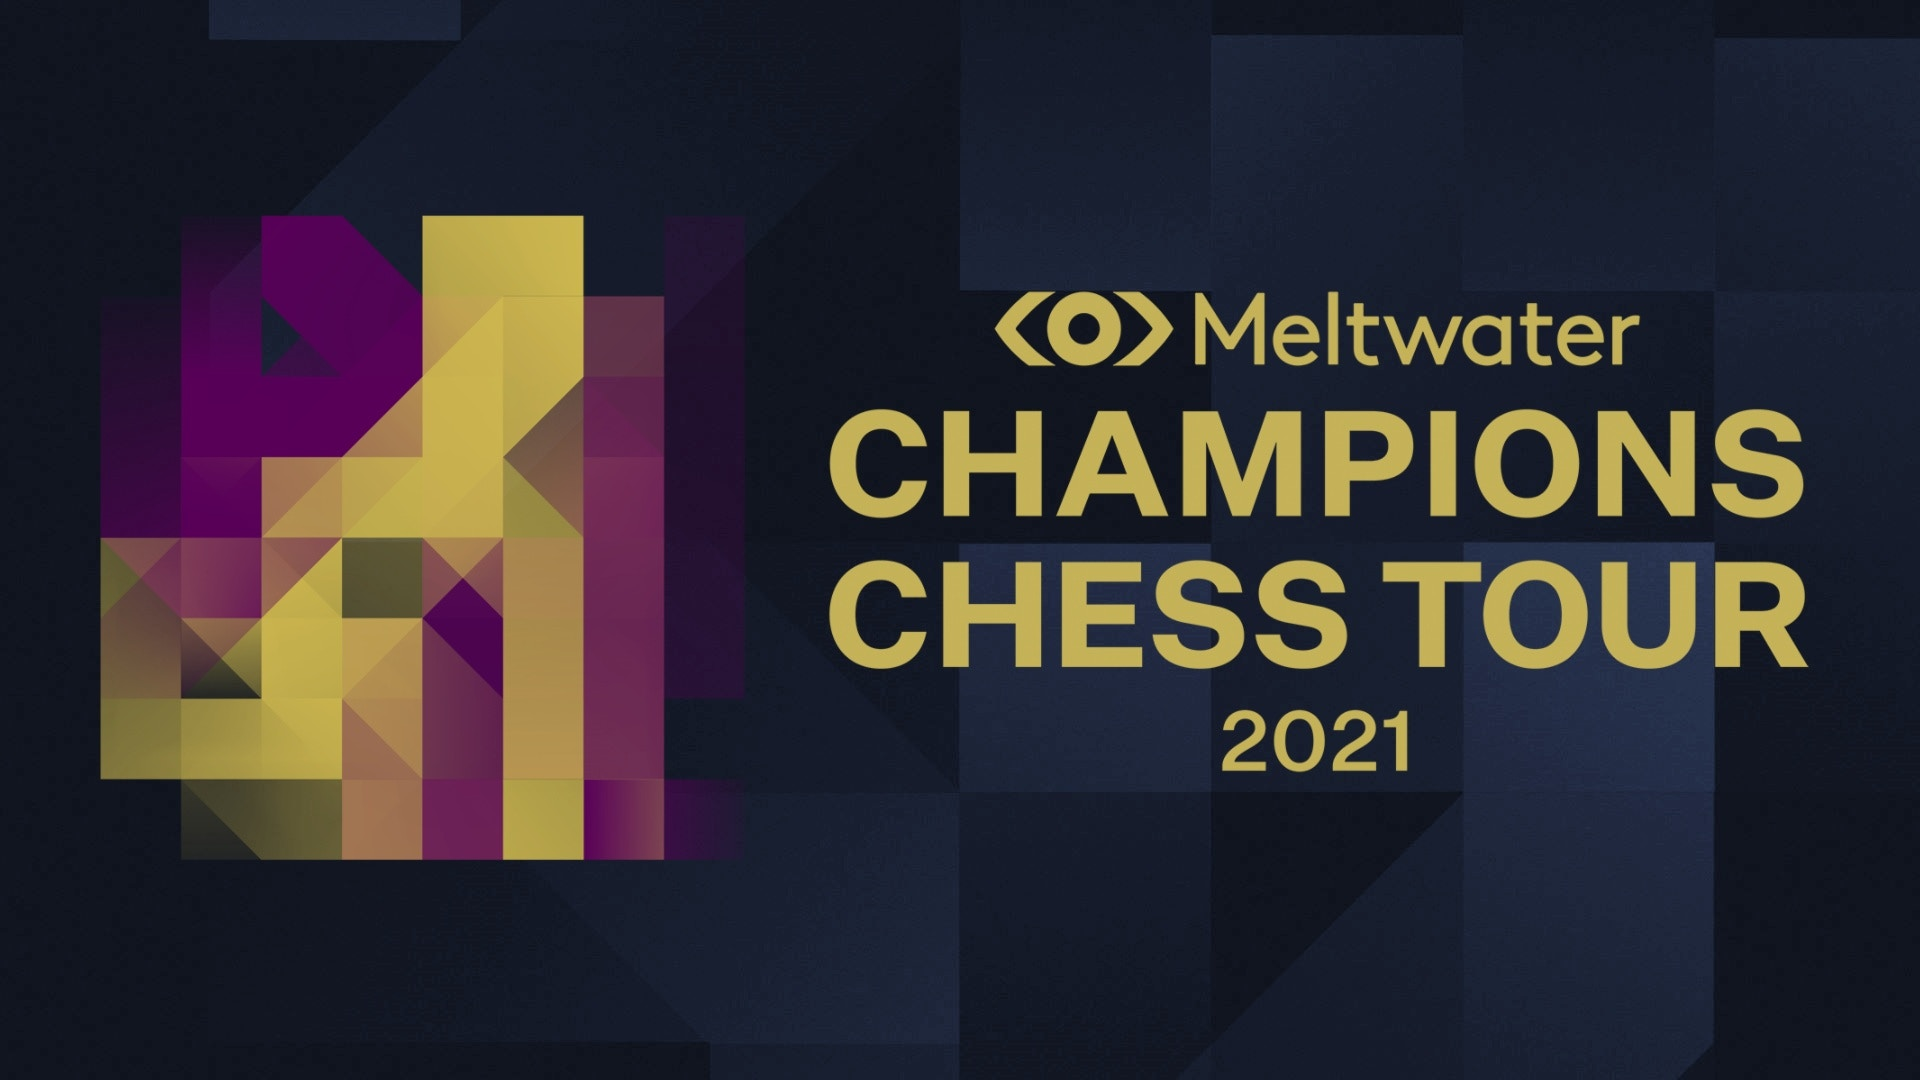 Meltwater Champions Chess Tour